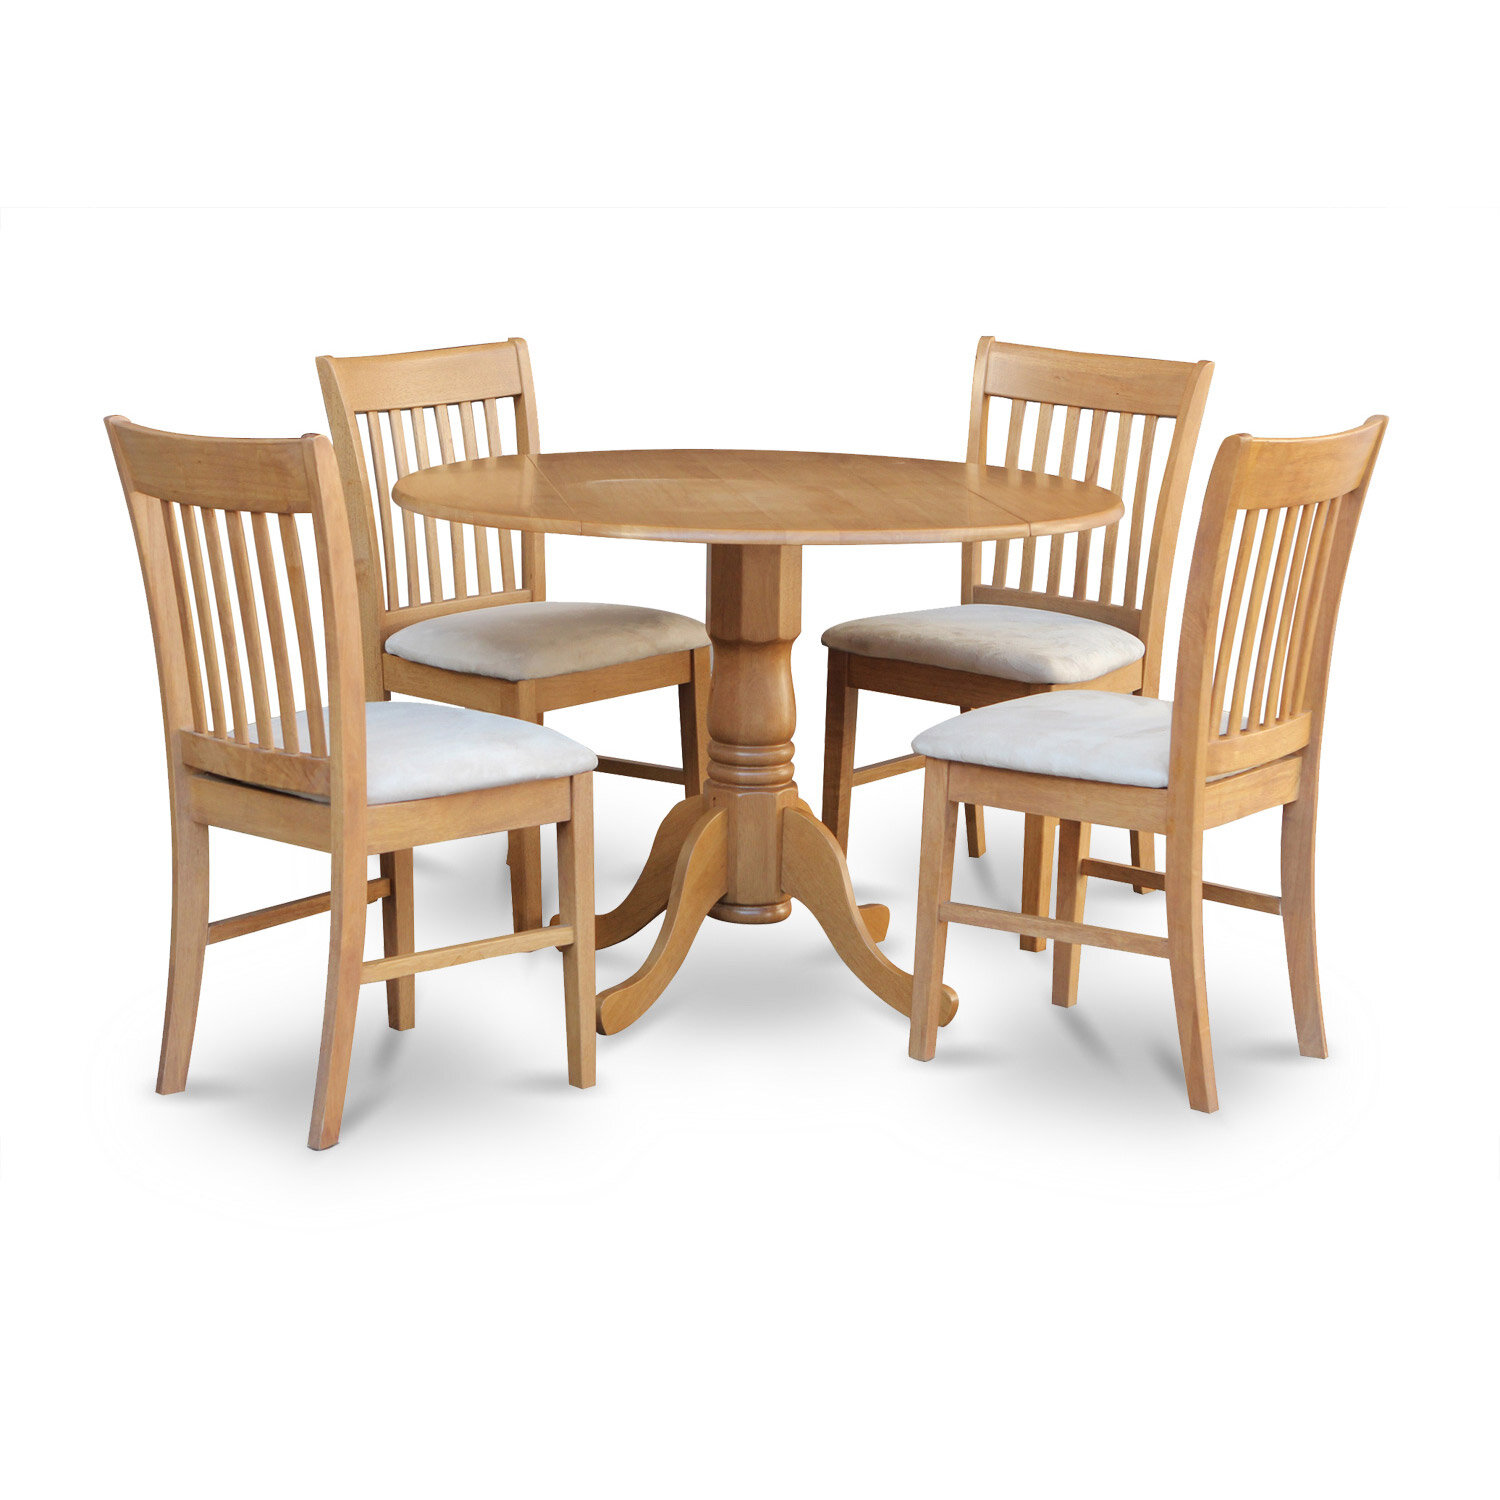 Charlton home gloucester piece dining set ebay